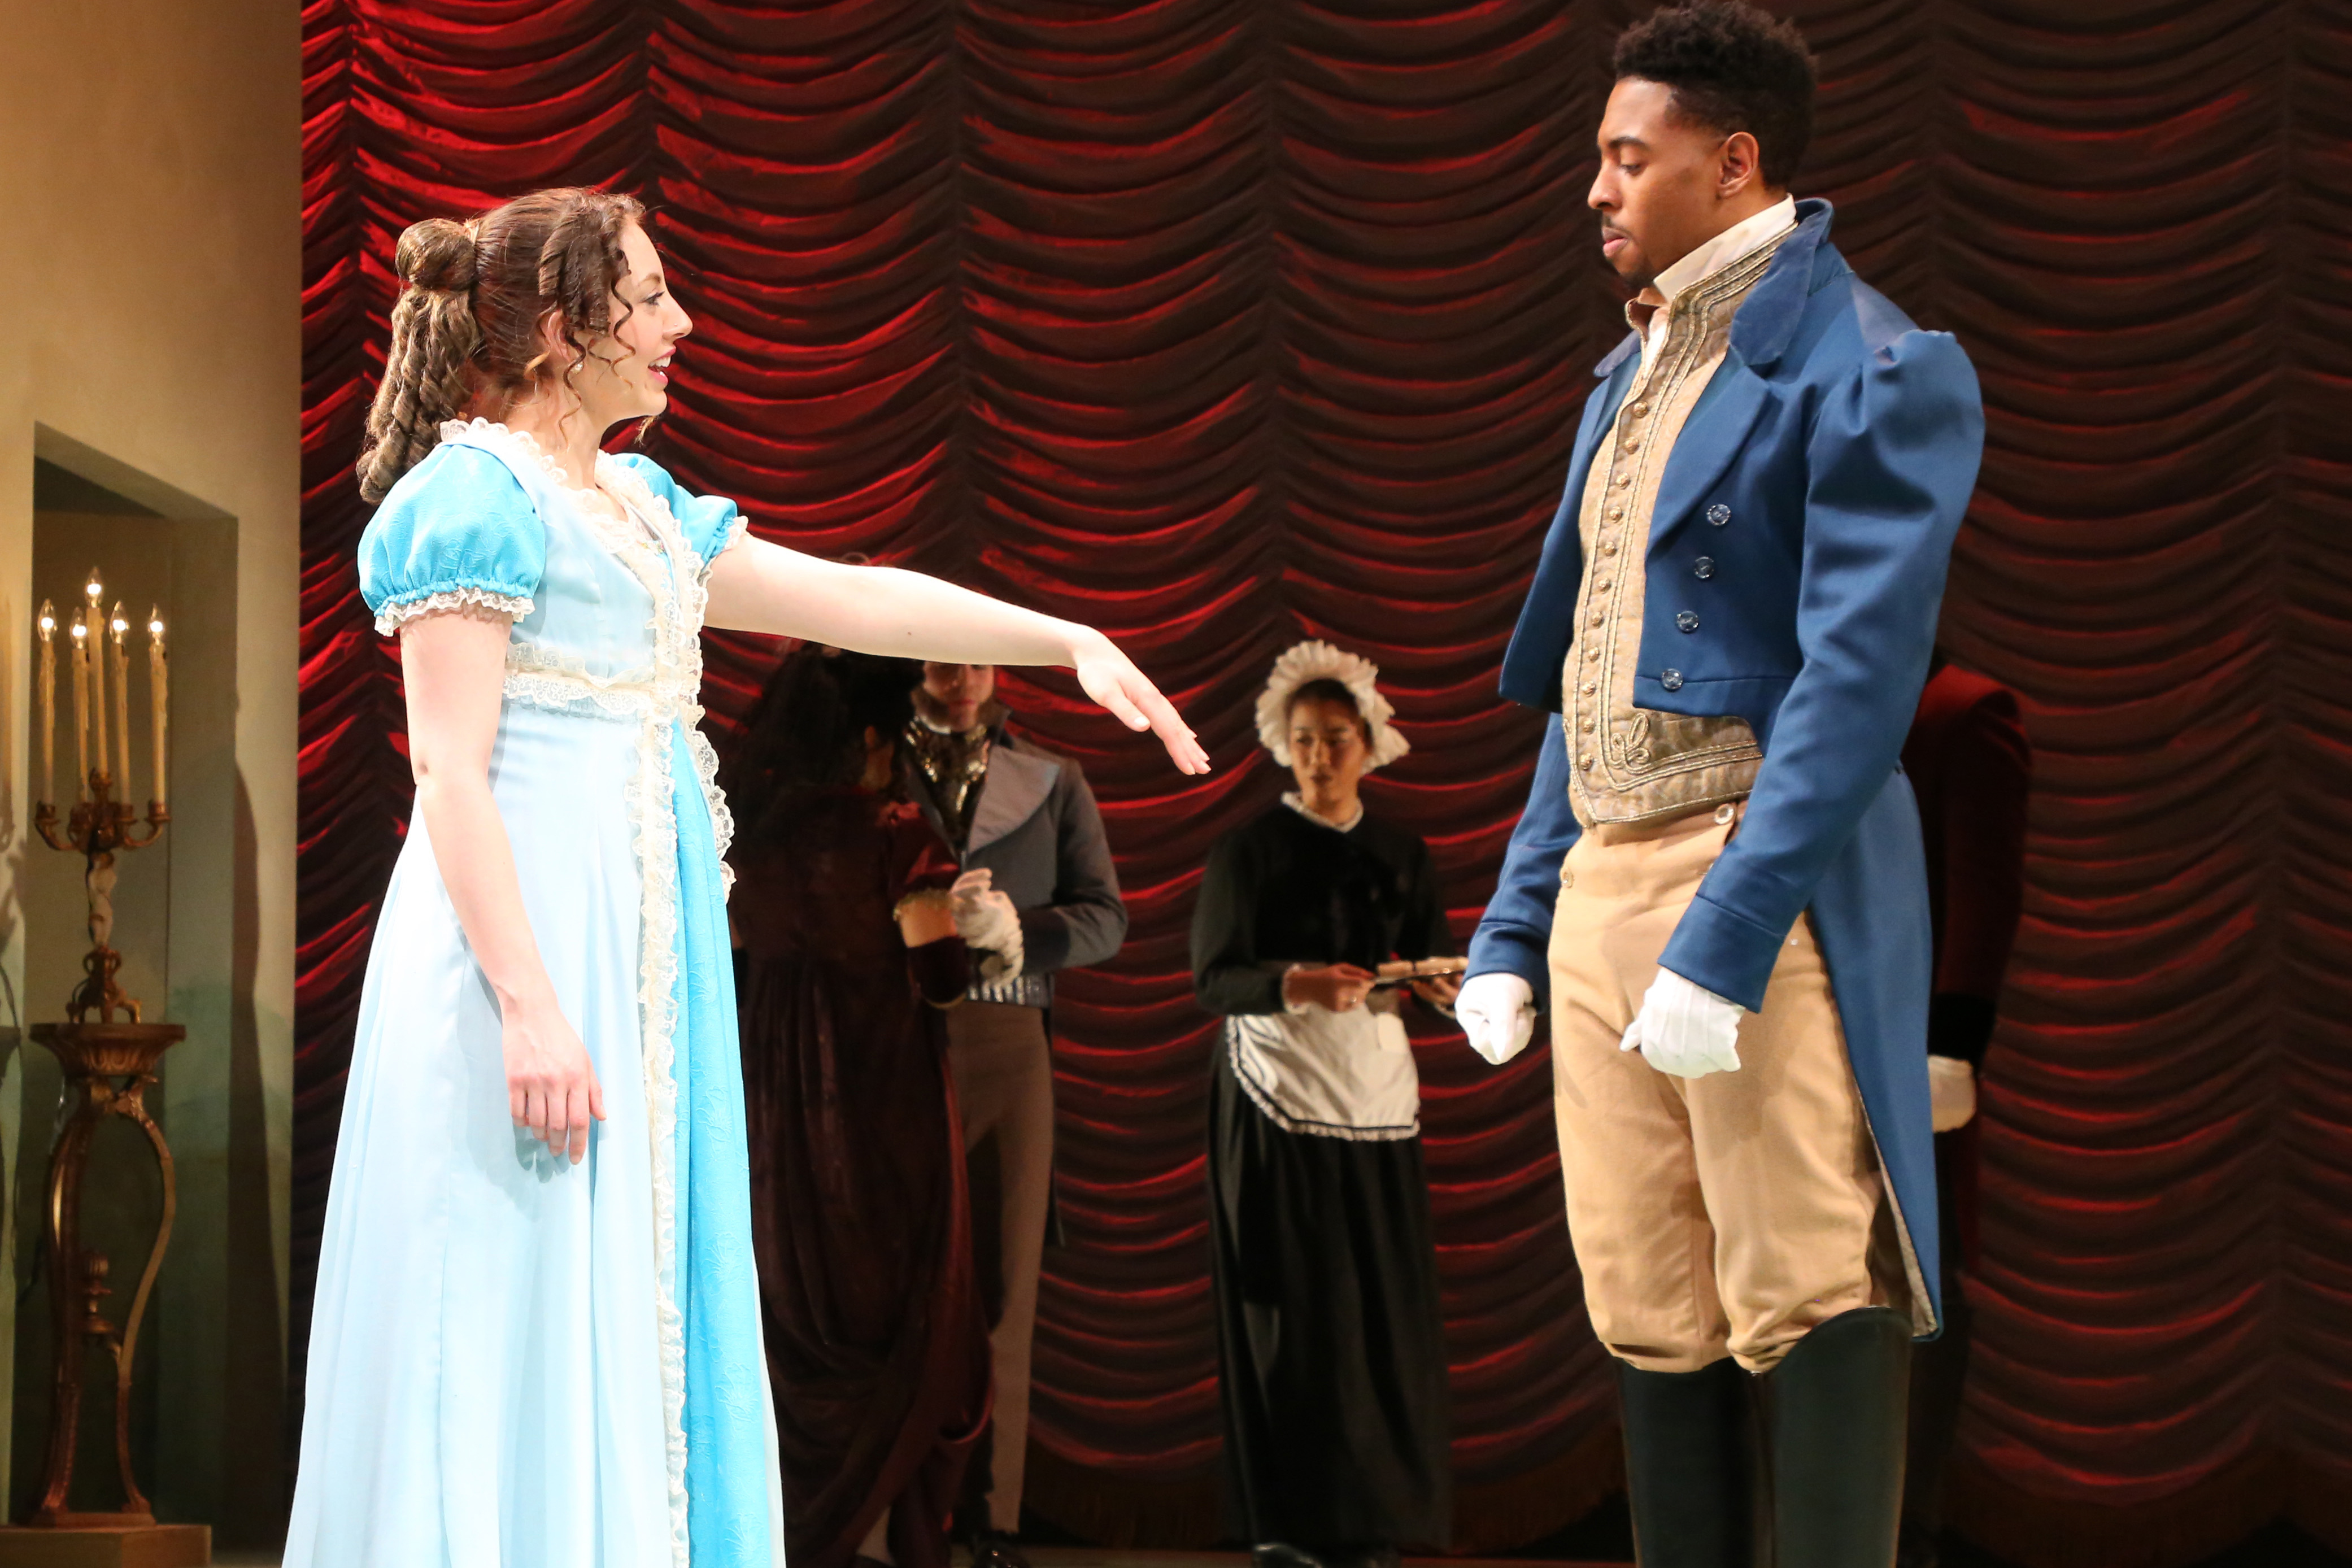 Susannah Resnikoff '16 (SFA) (Marianne Dashwood) and Bryce Wood '16 MFA Acting (Willoughby) in 'Sense and Sensibility,' adapted by Joseph Hanreddy and JR Sullivan from the novel by Jane Austen. (Gerry Goodstein for UConn)